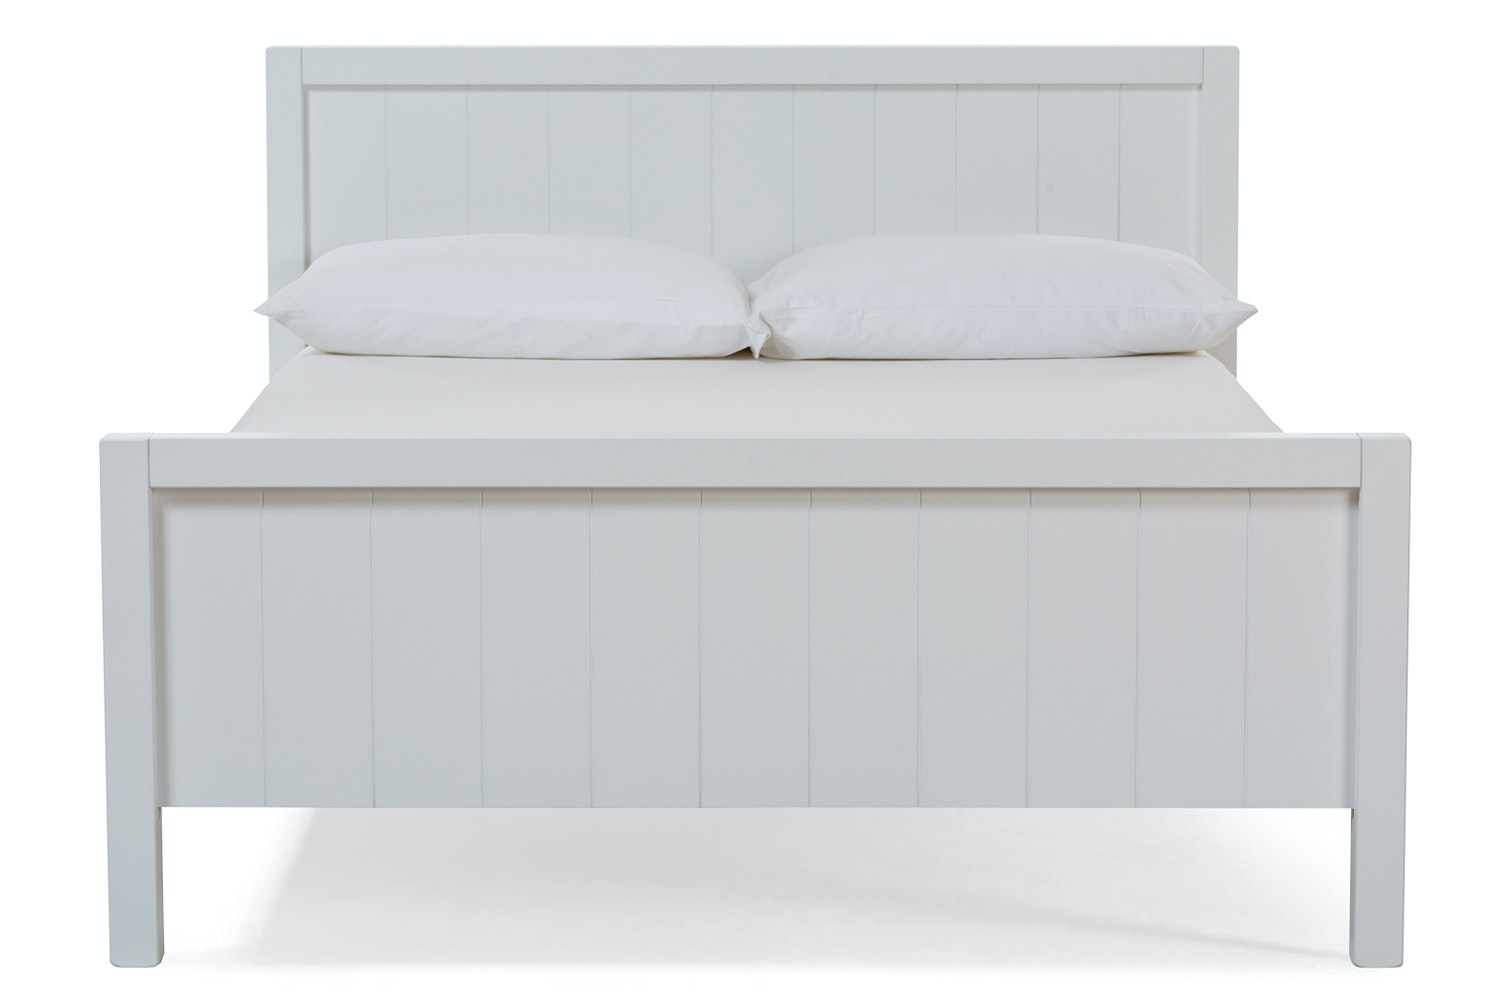 Urban White Small Double Bed |4ft